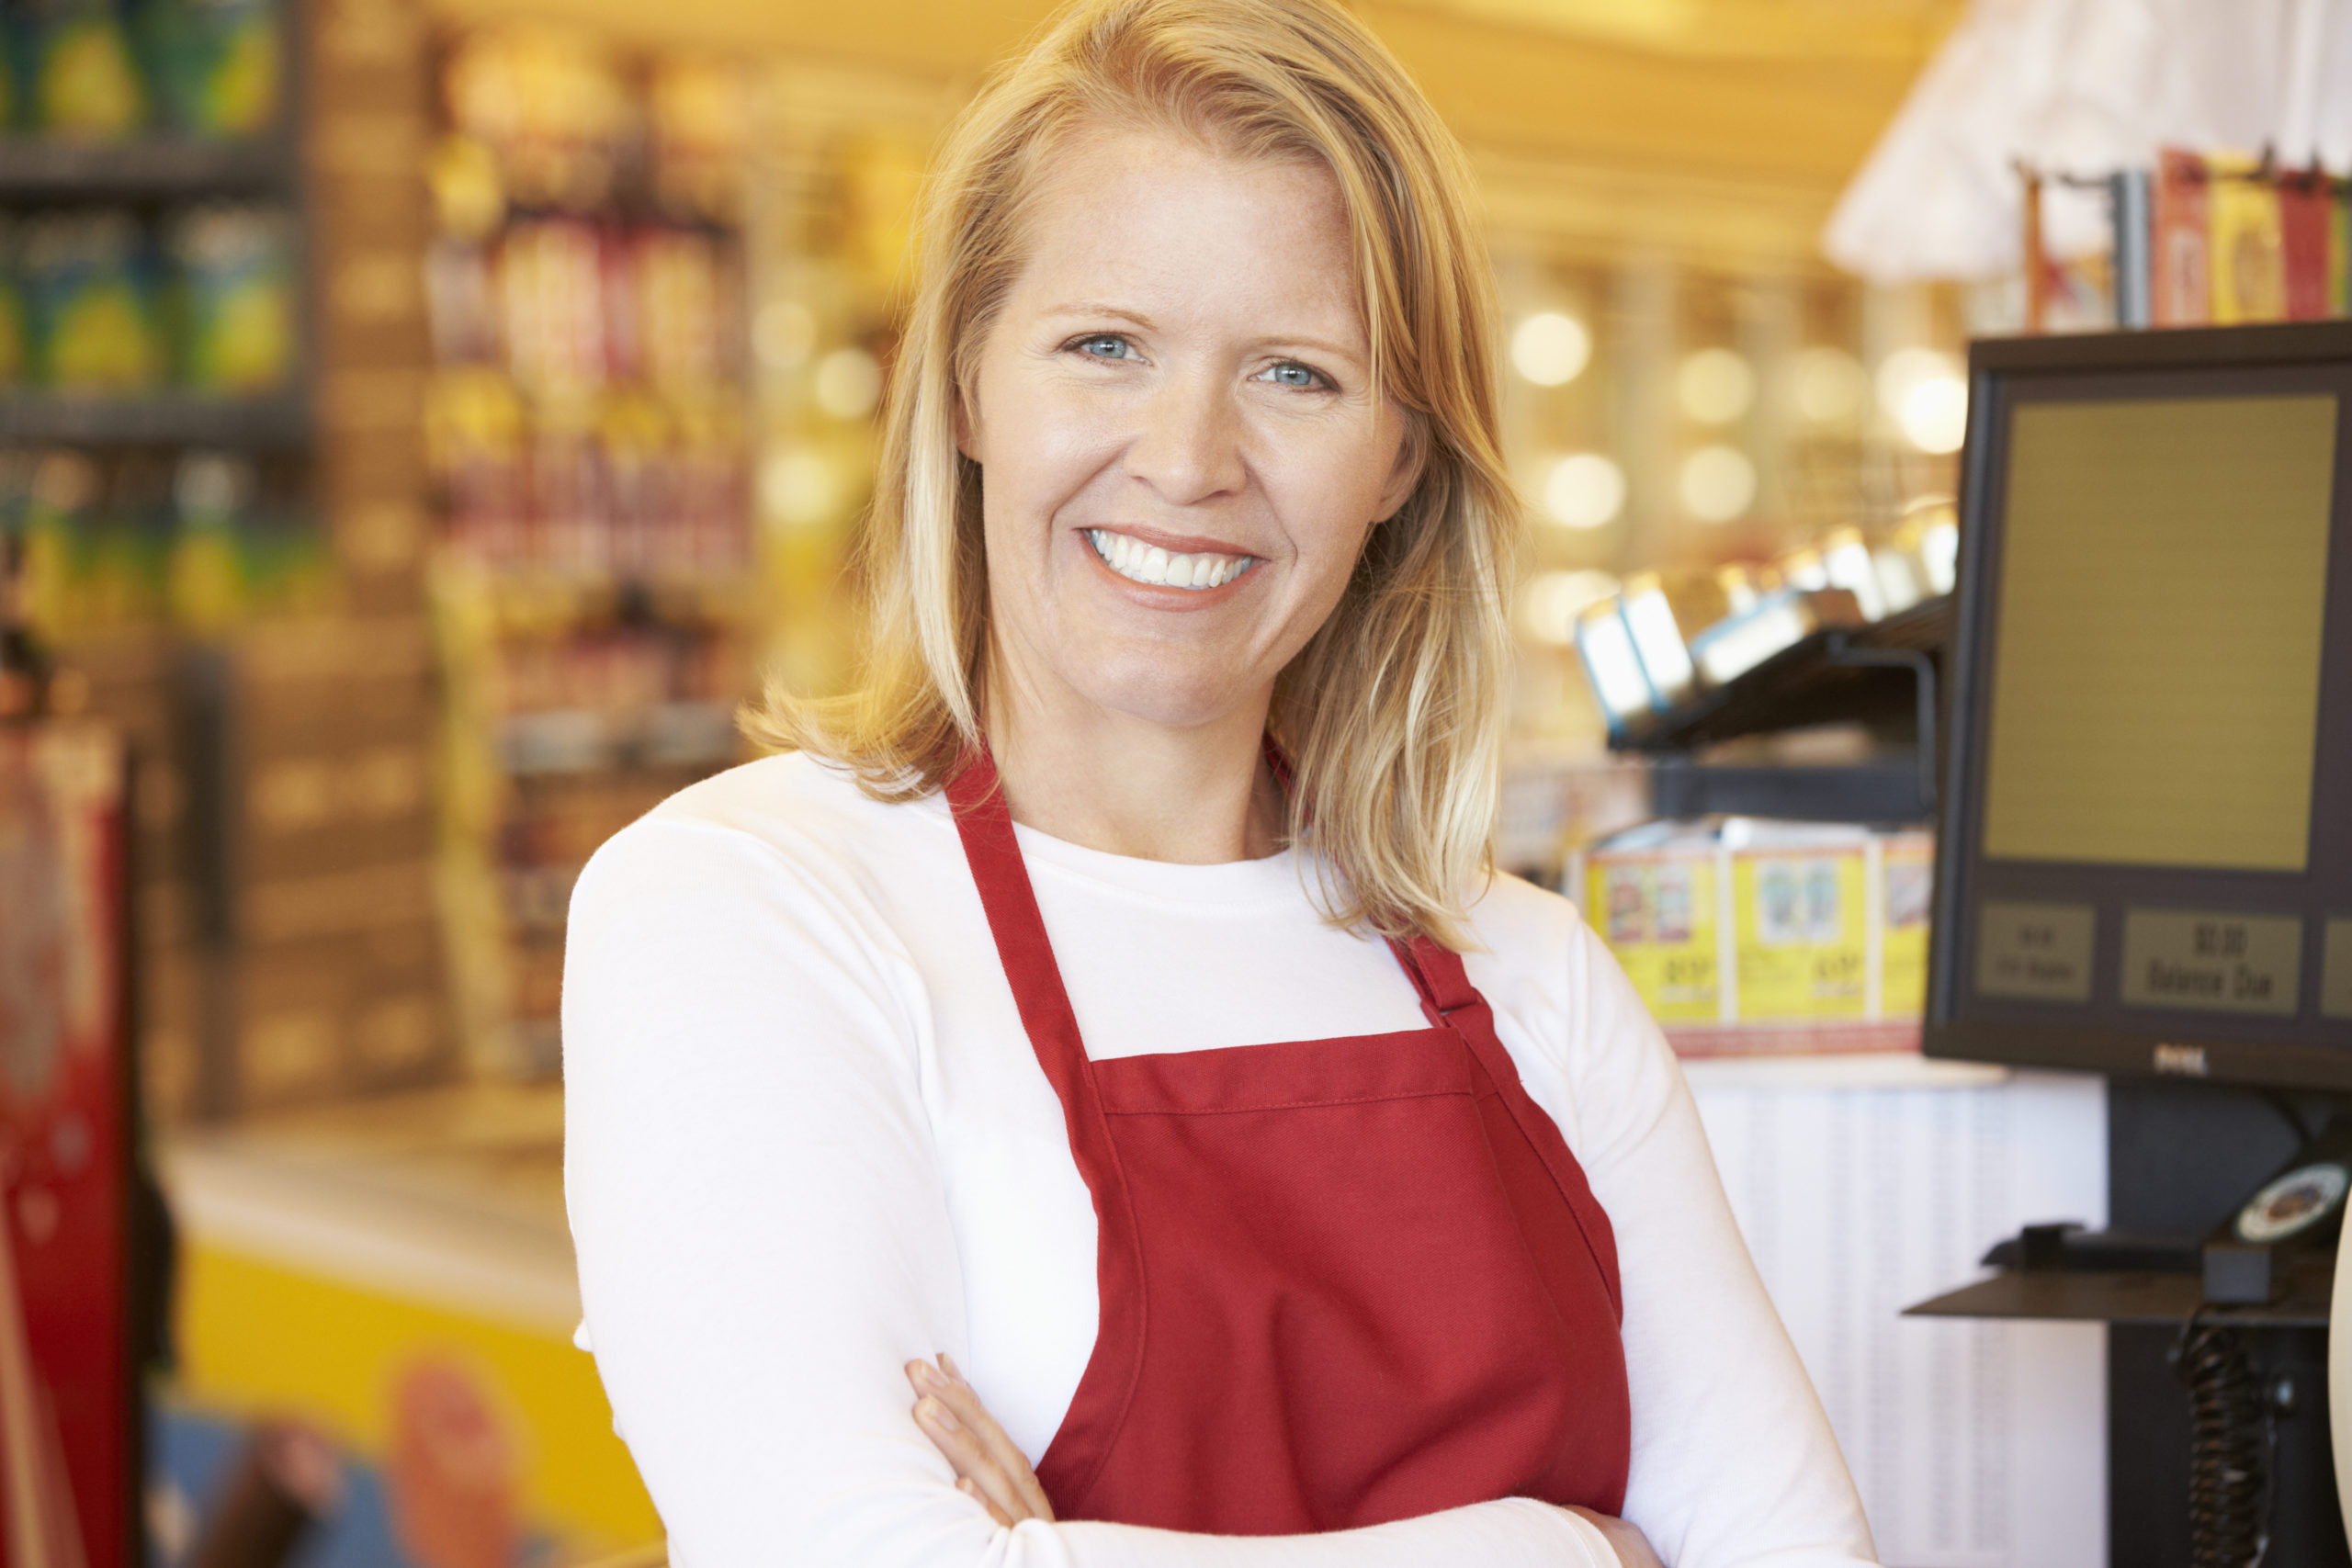 Retail worker in red apron